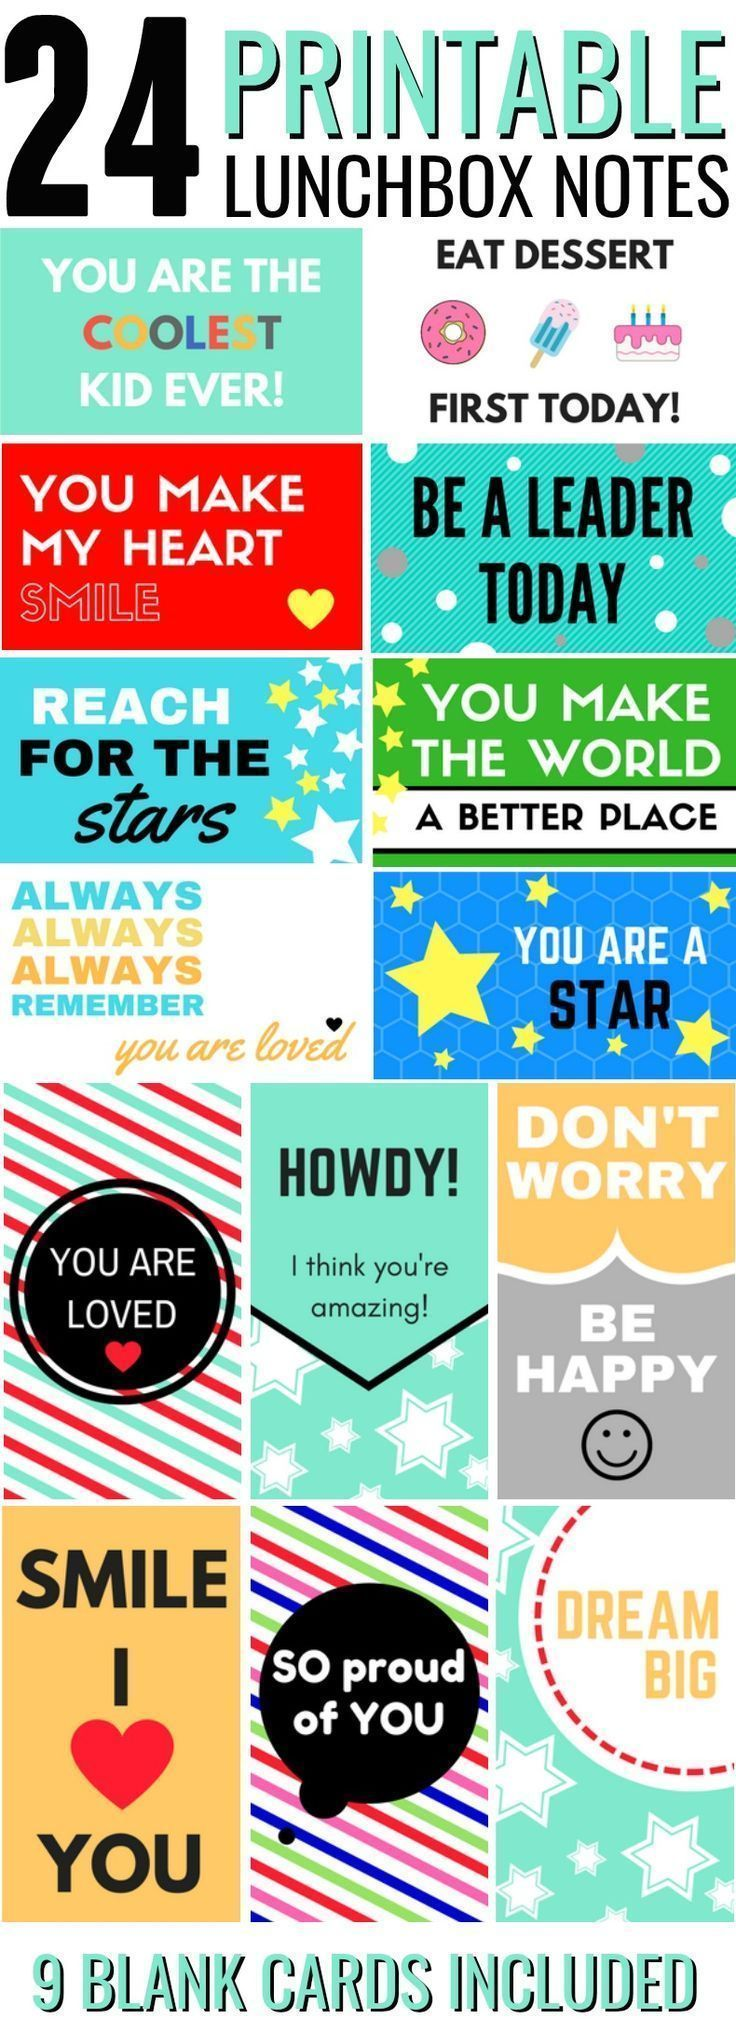 Back to School - Printable Lunchbox Notes for lunches images